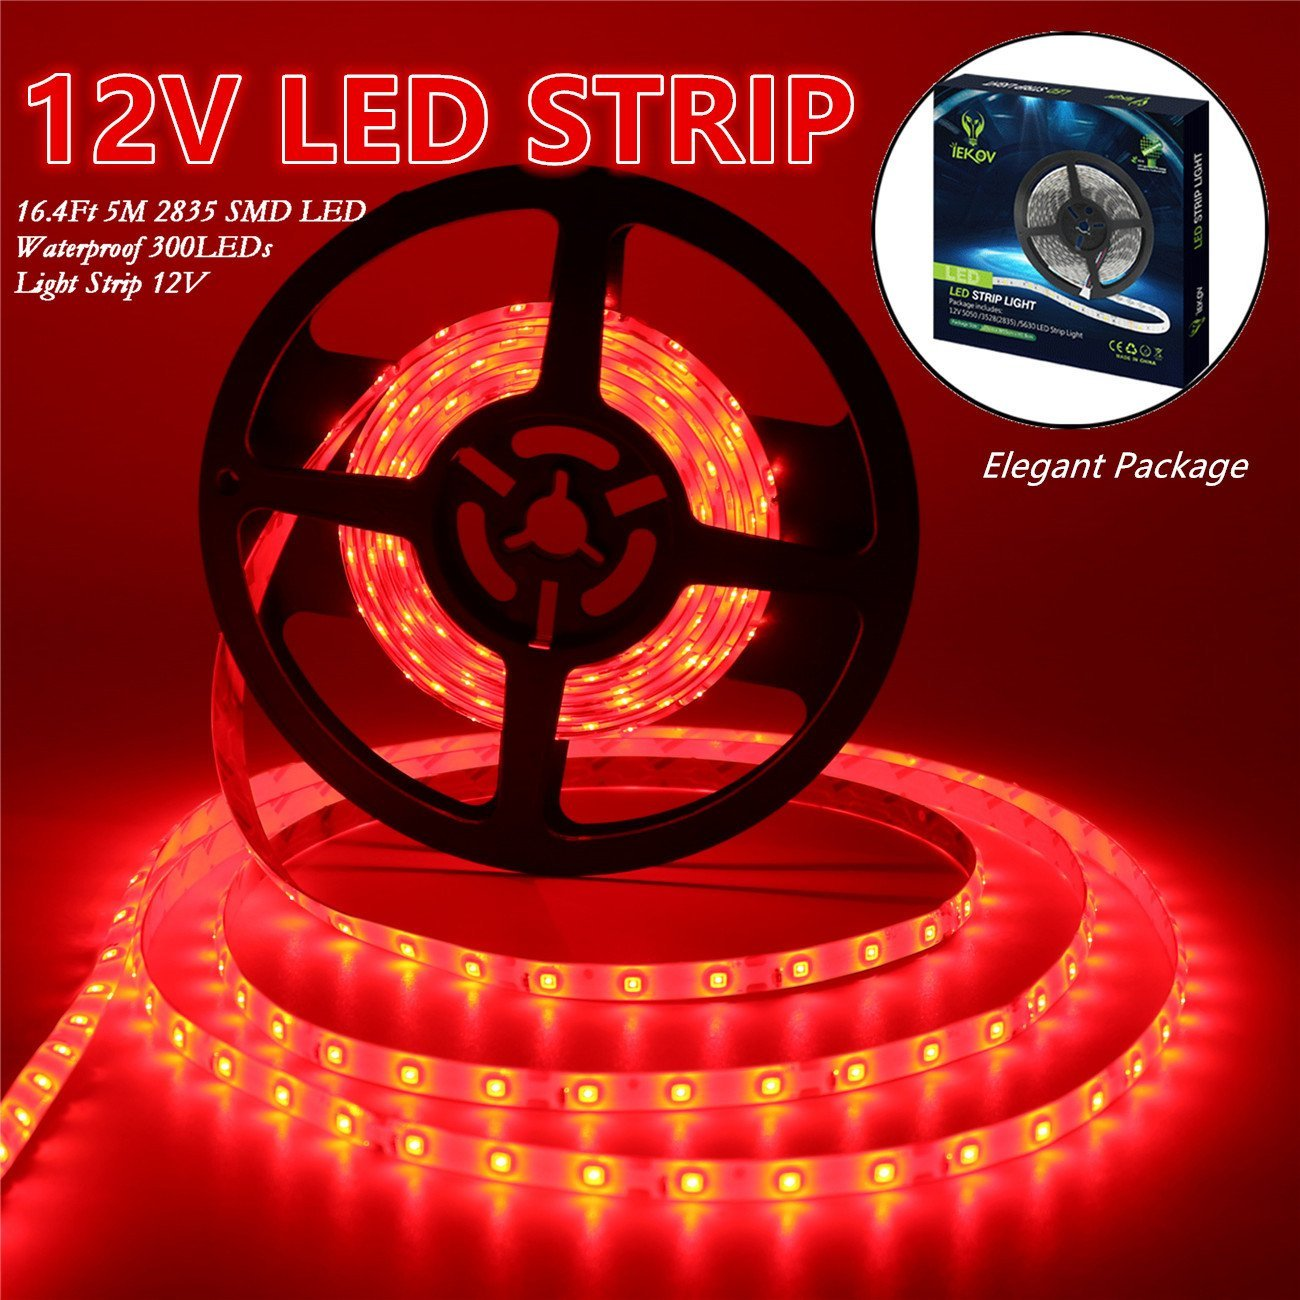 Led Strip Lights, IEKOV™ 2835 SMD 300LEDs Waterproof Flexible Xmas Decorative Lighting Strips, LED Tape, 5M 16.4Ft DC12V, 2 times brightness than SMD 3528 LED Light Strip (Red)